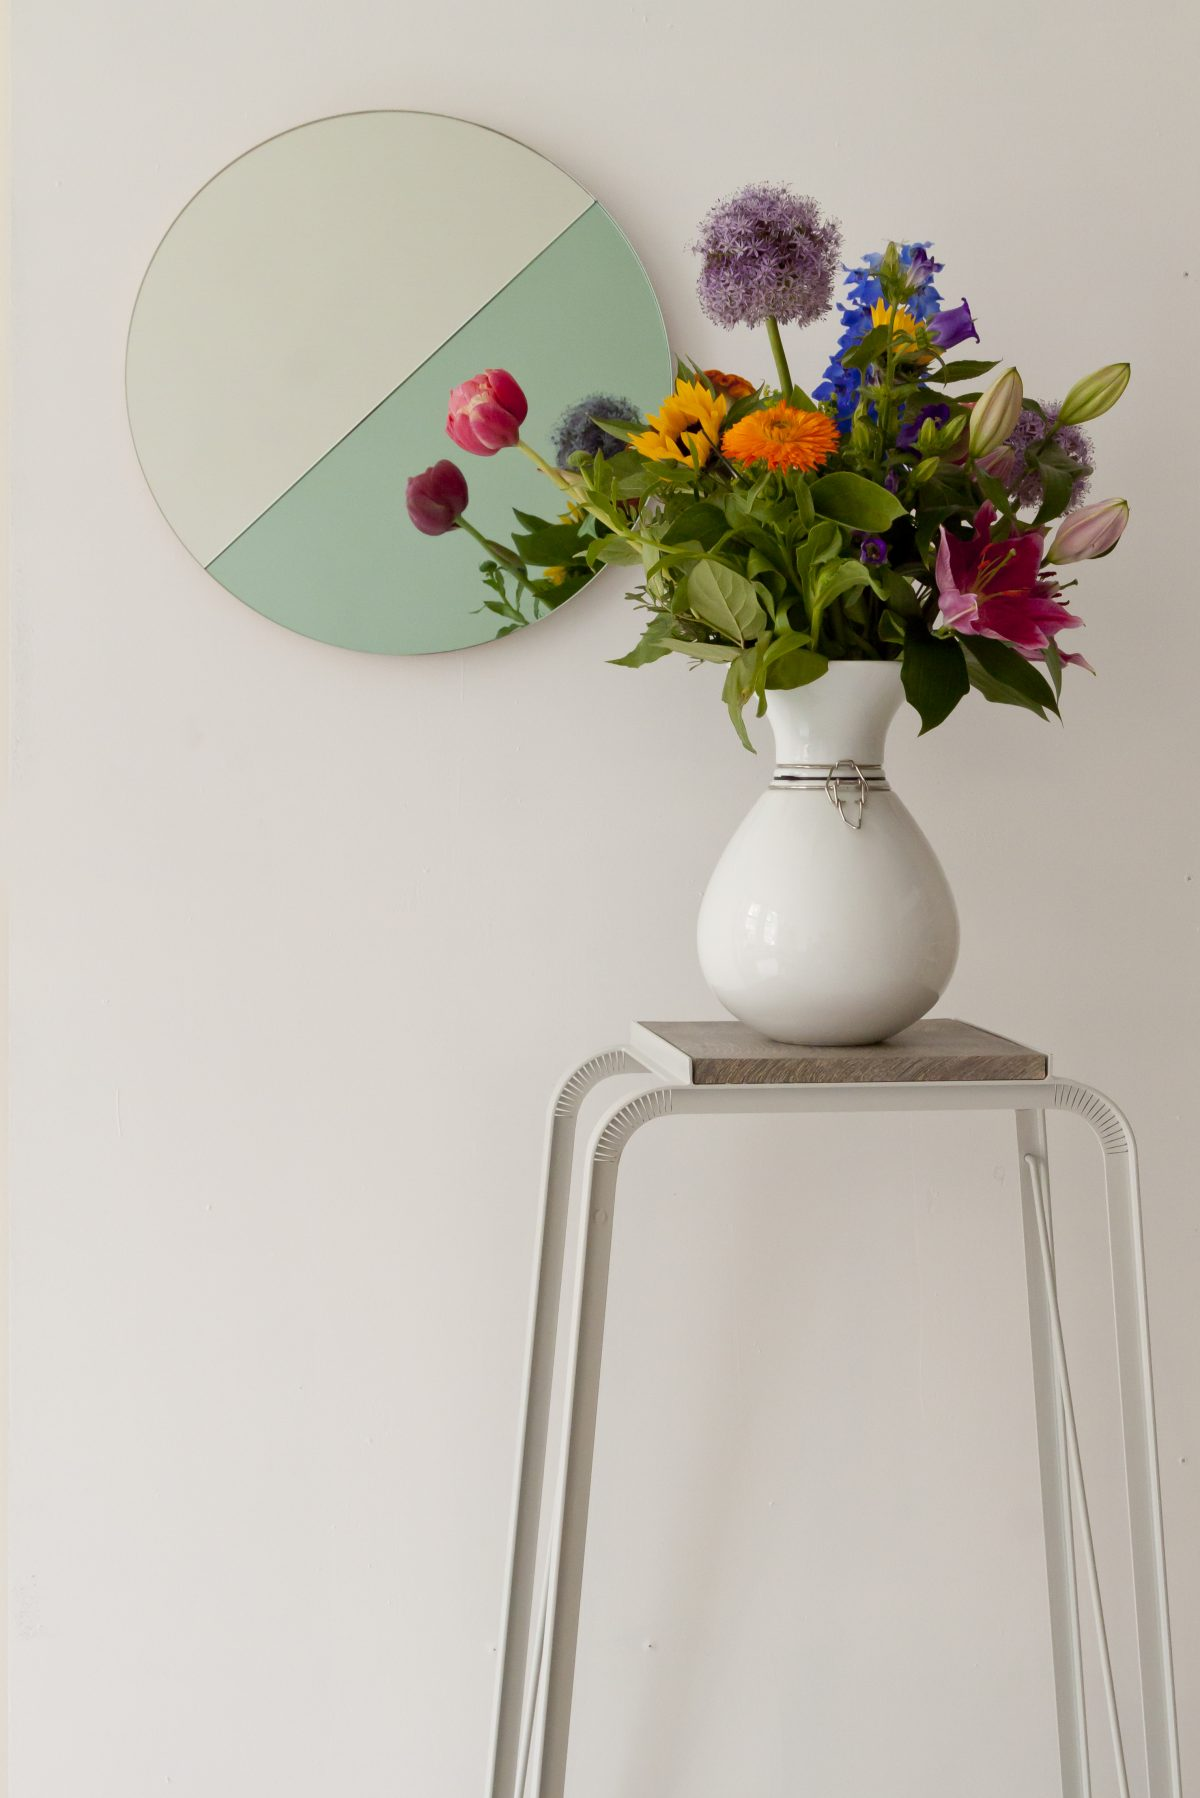 Vij5-mirror-Moonrise-green-Flexvase – gimmii